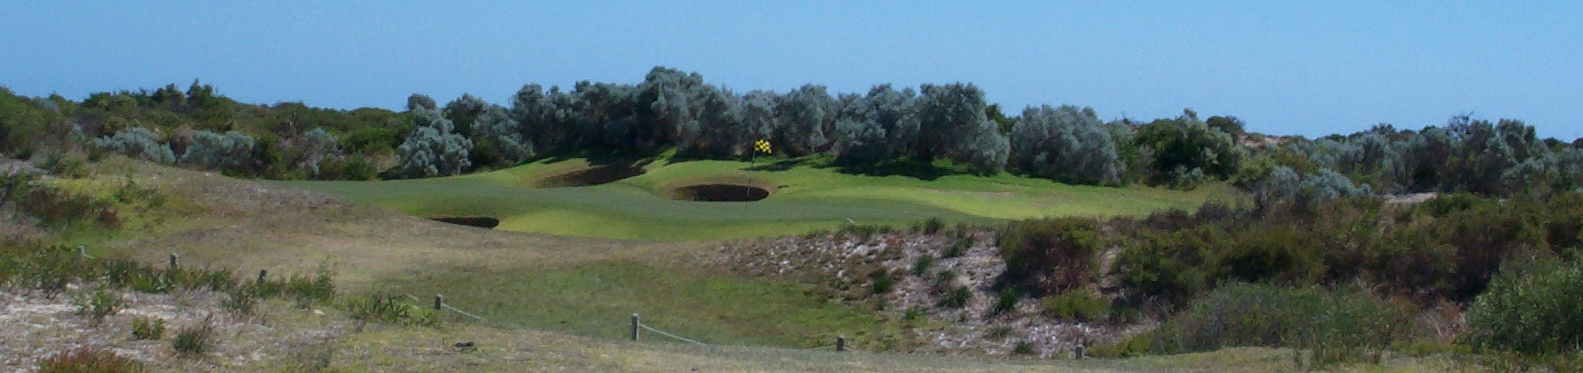 'Wee Tap'- hole16 at The Links at Kennedy Bay